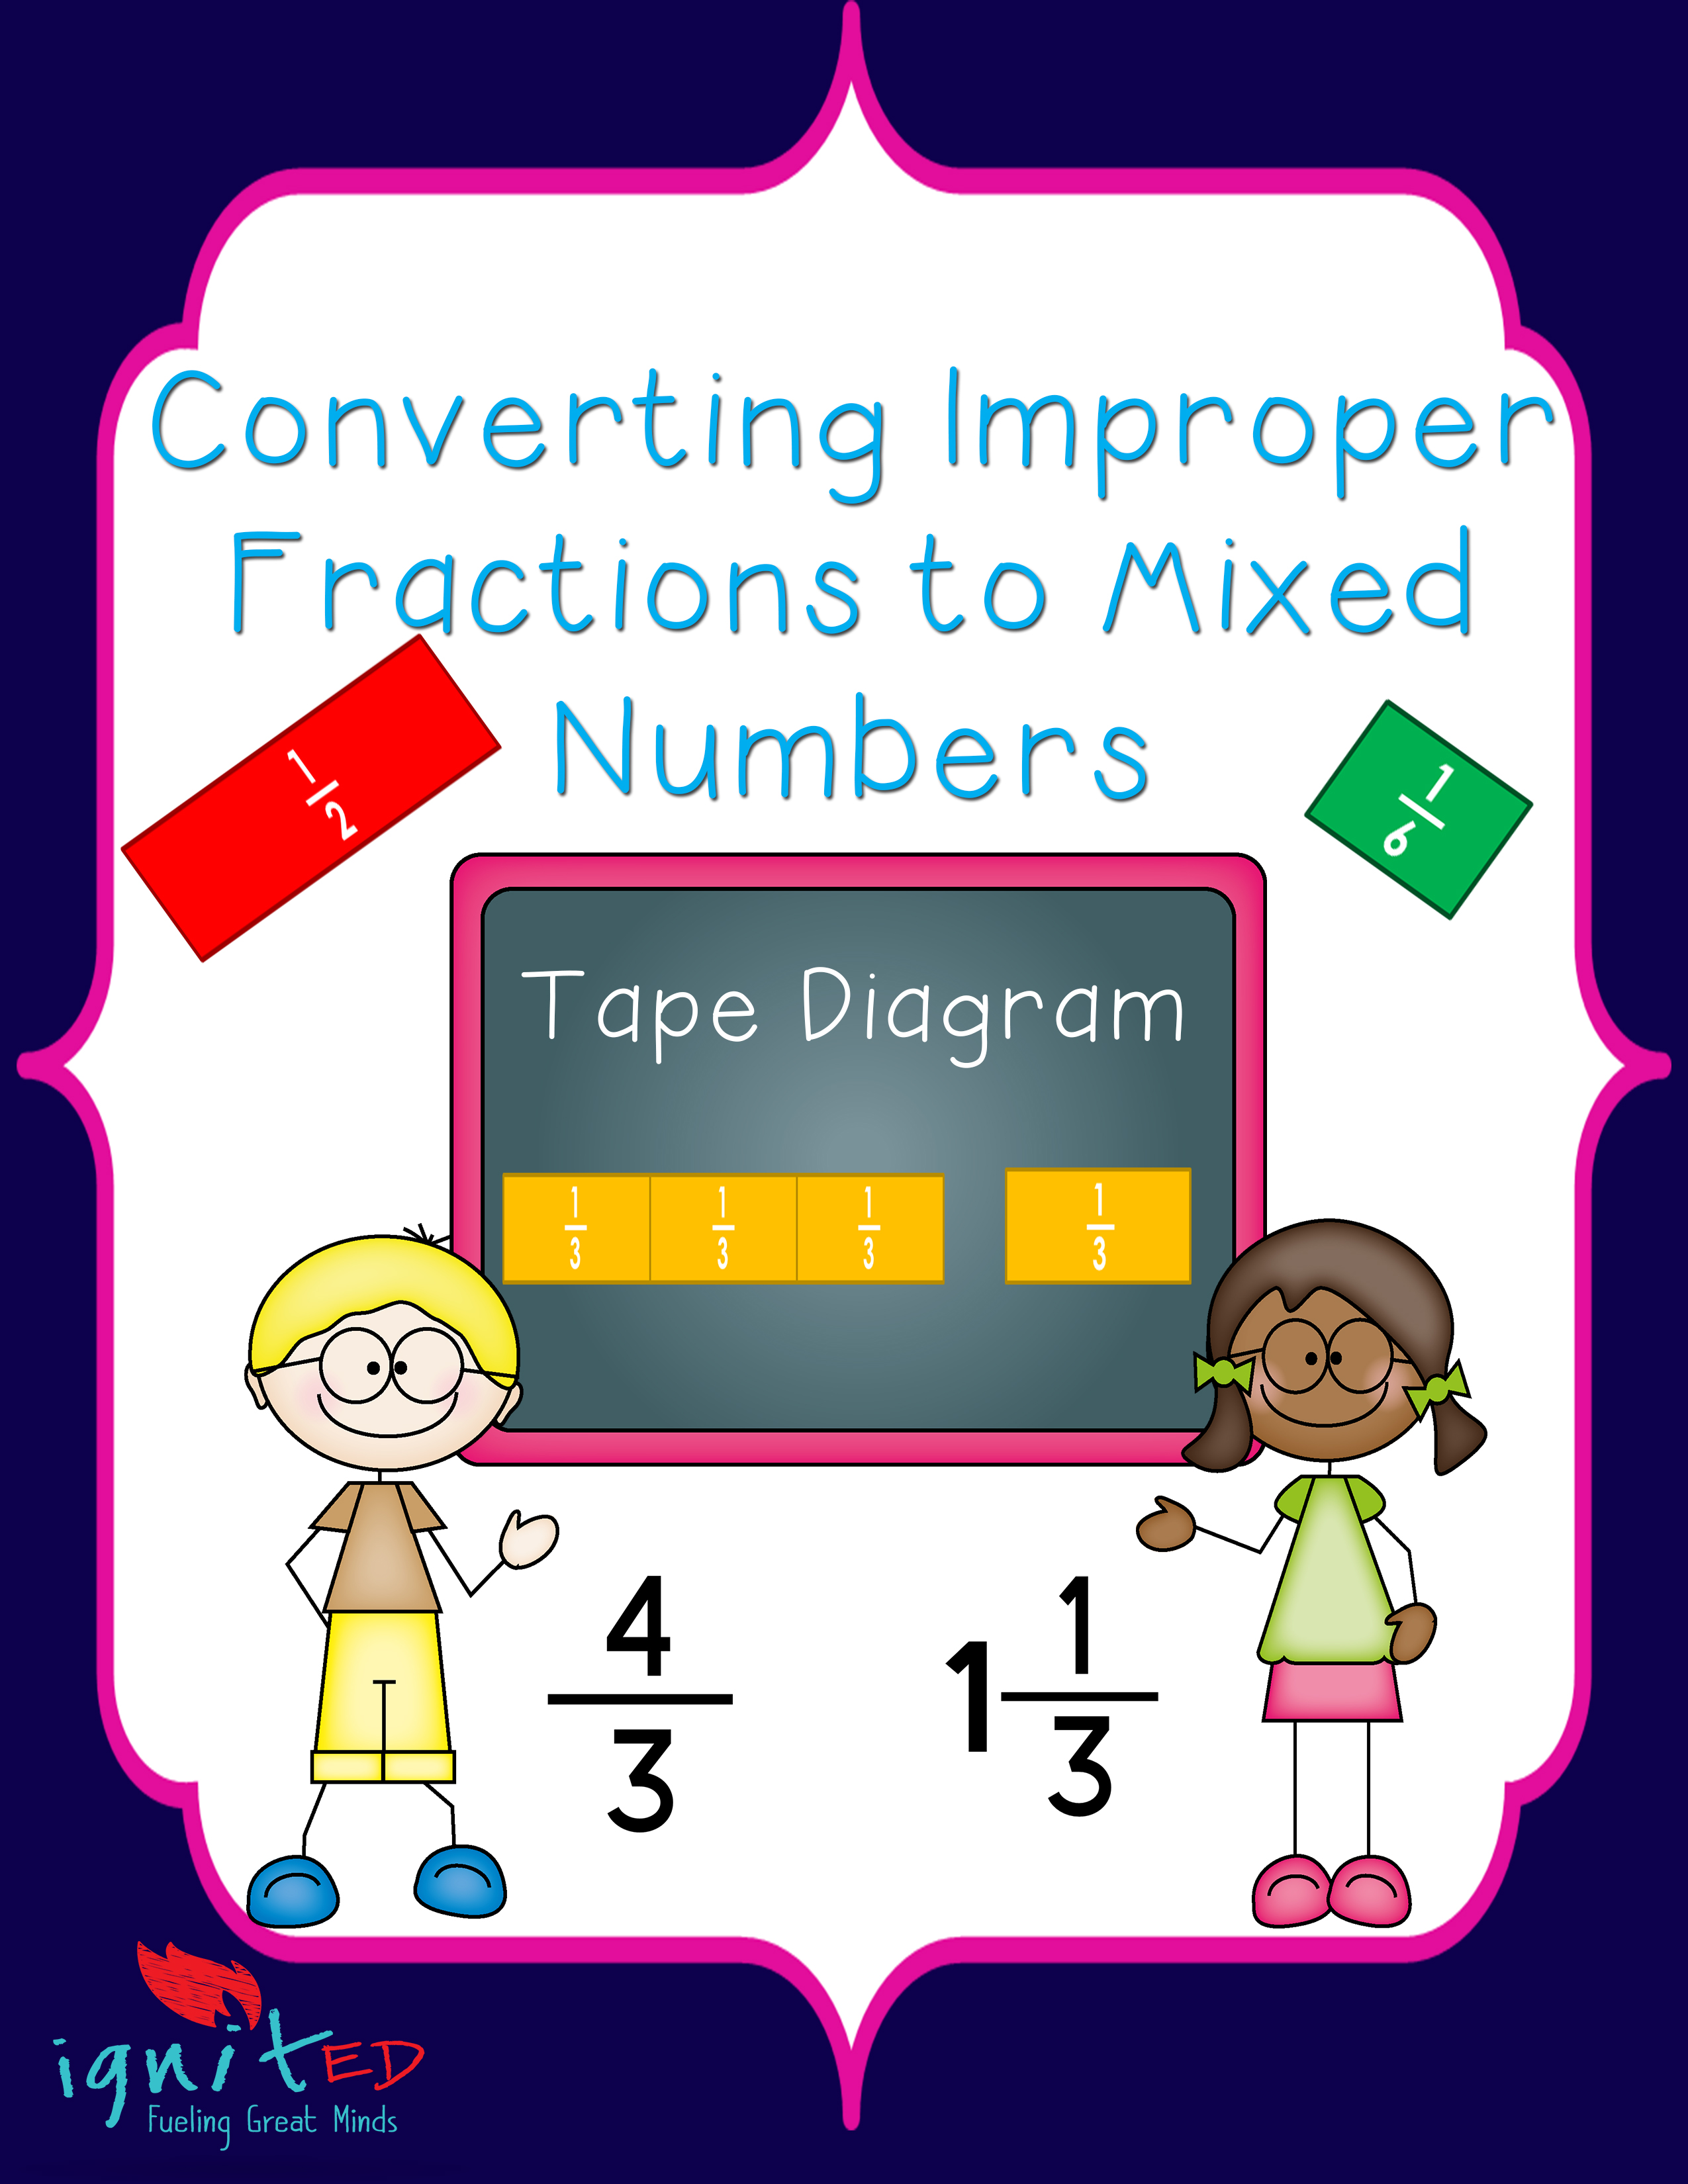 Tape diagramconverting improper fractions to mixed numbers ignited tape diagramconverting improper fractions ccuart Choice Image